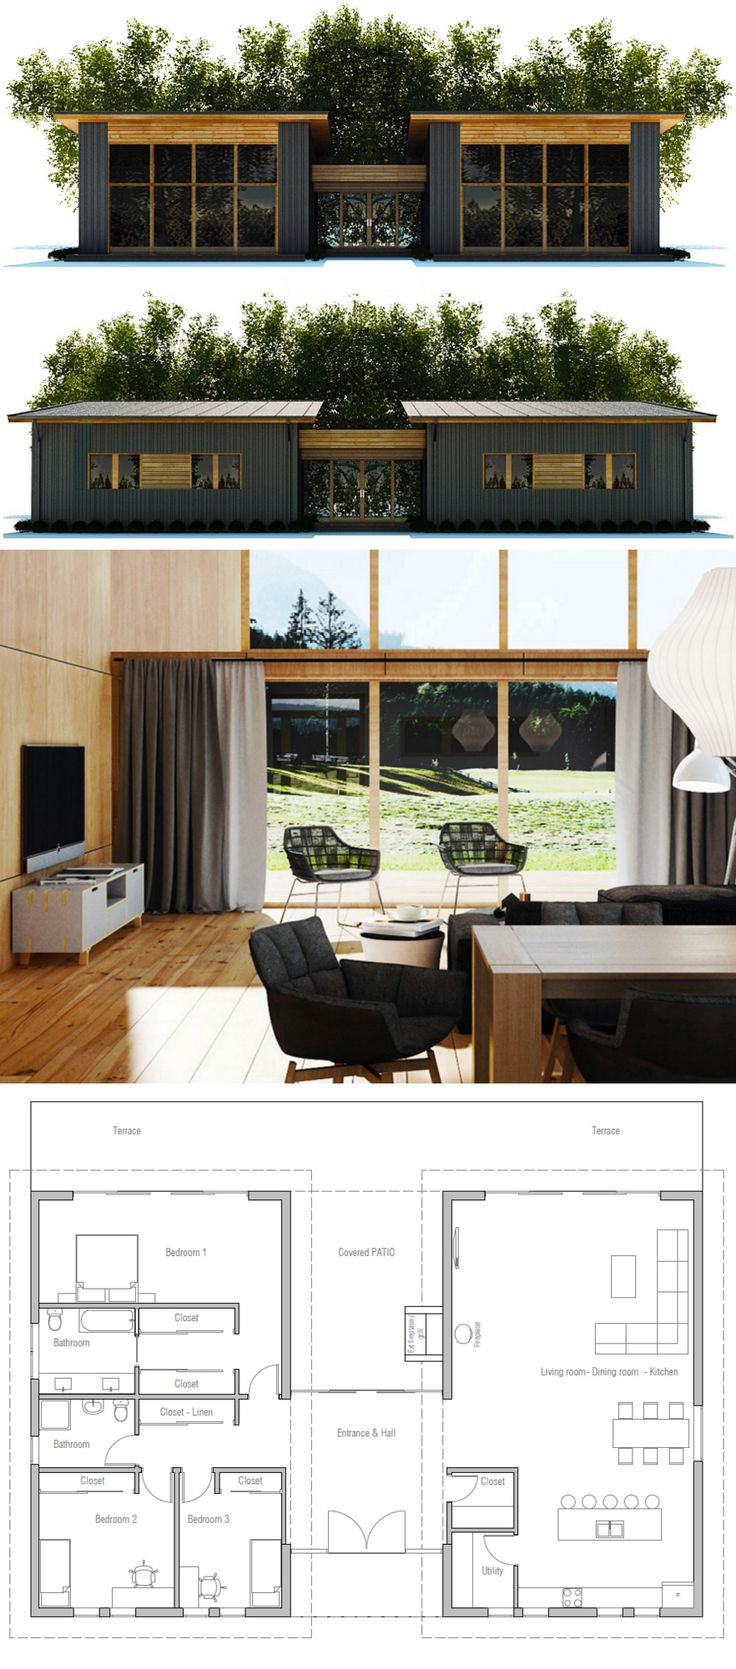 Awe Inspiring 17 Best Ideas About Small Houses On Pinterest Small Homes Tiny Largest Home Design Picture Inspirations Pitcheantrous